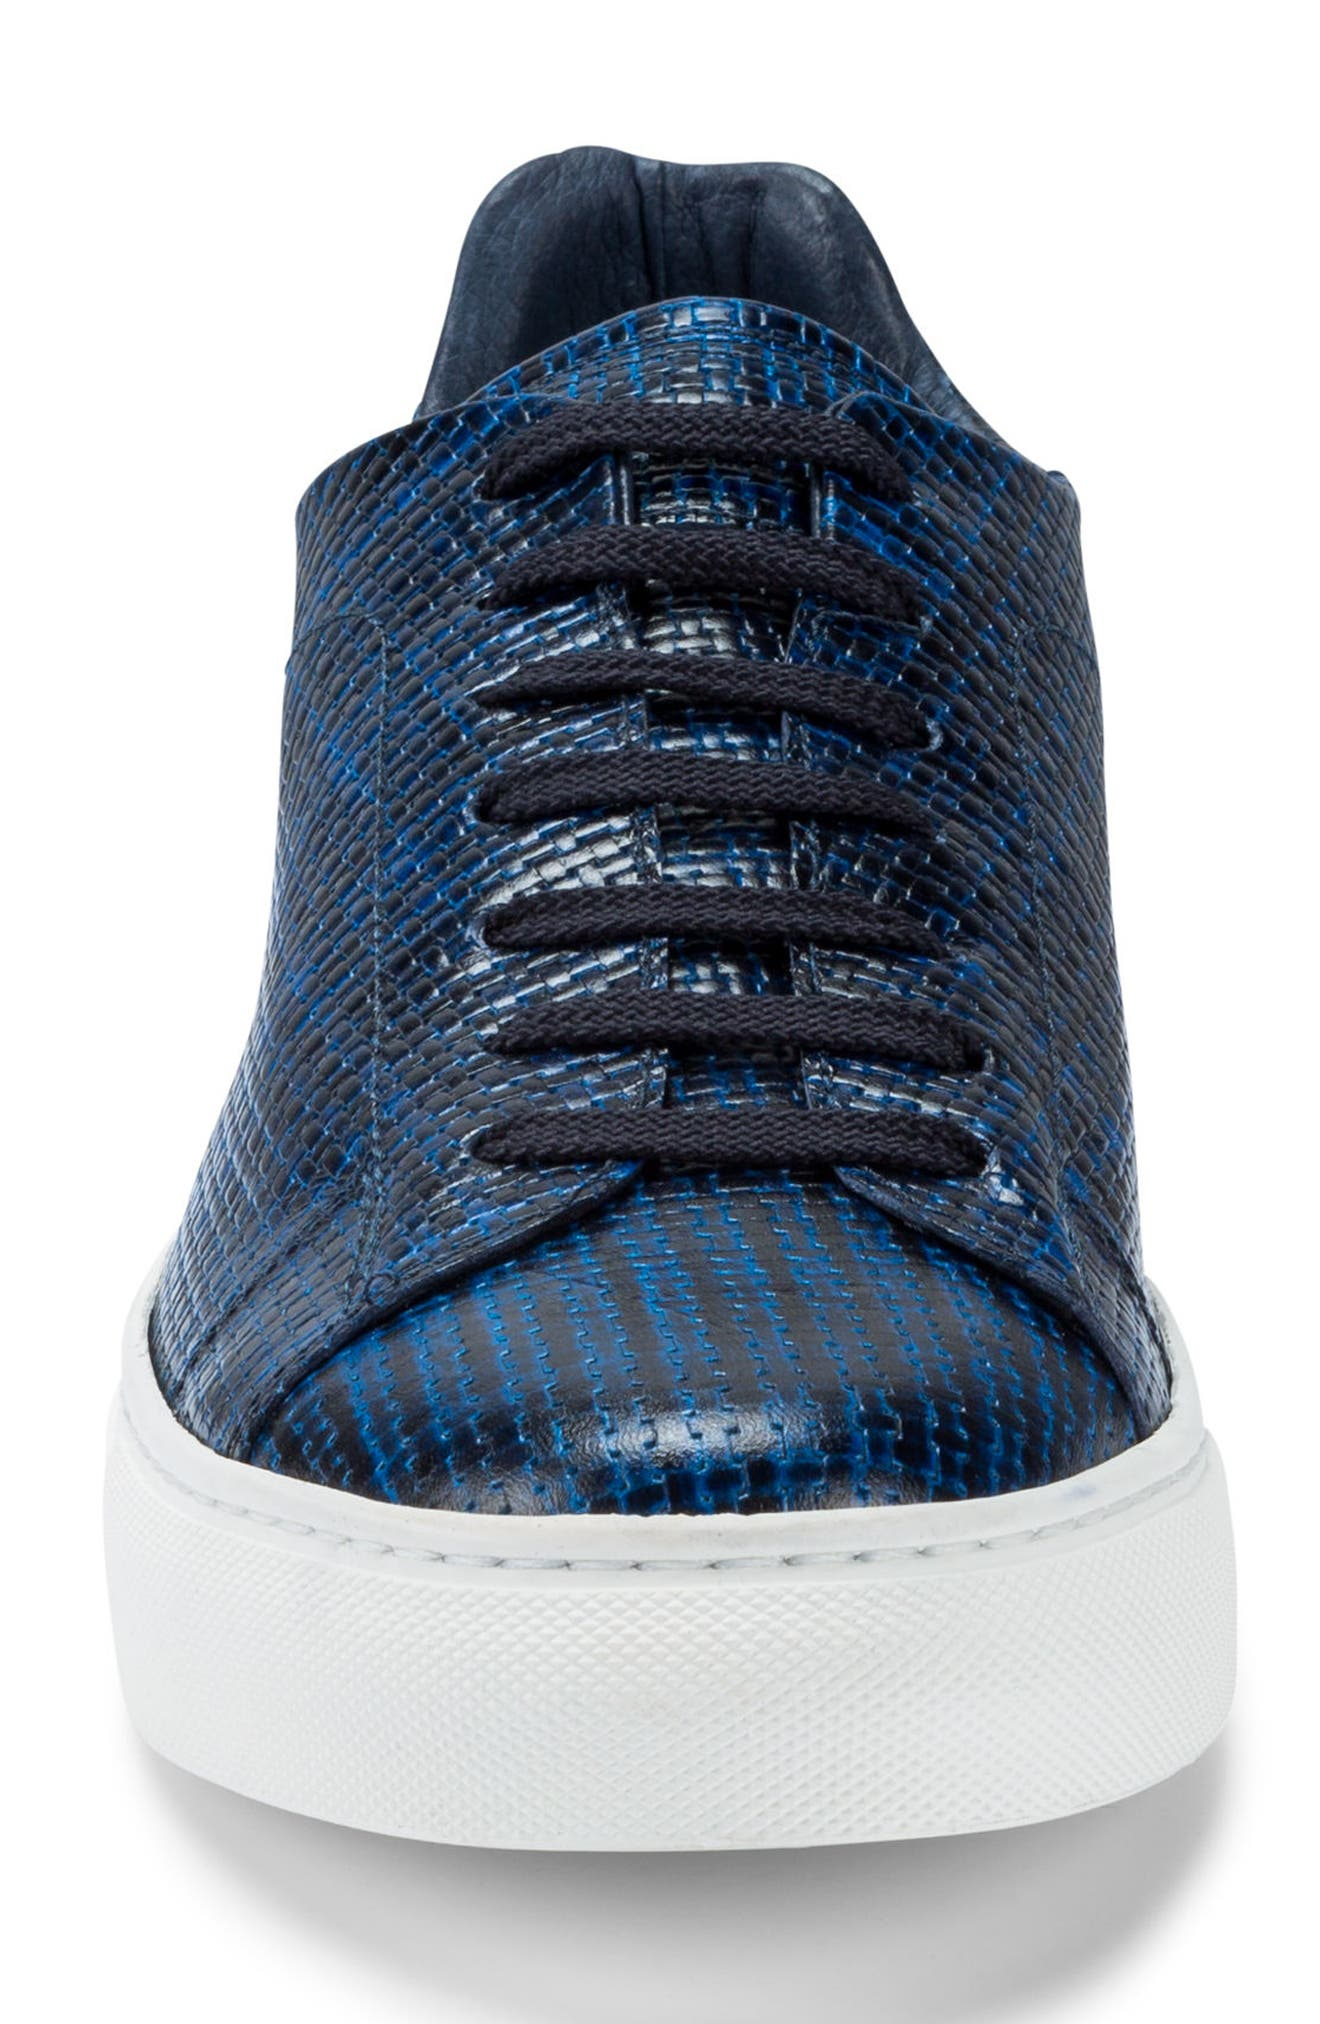 Wimbledon Sneaker,                             Alternate thumbnail 4, color,                             Navy Leather